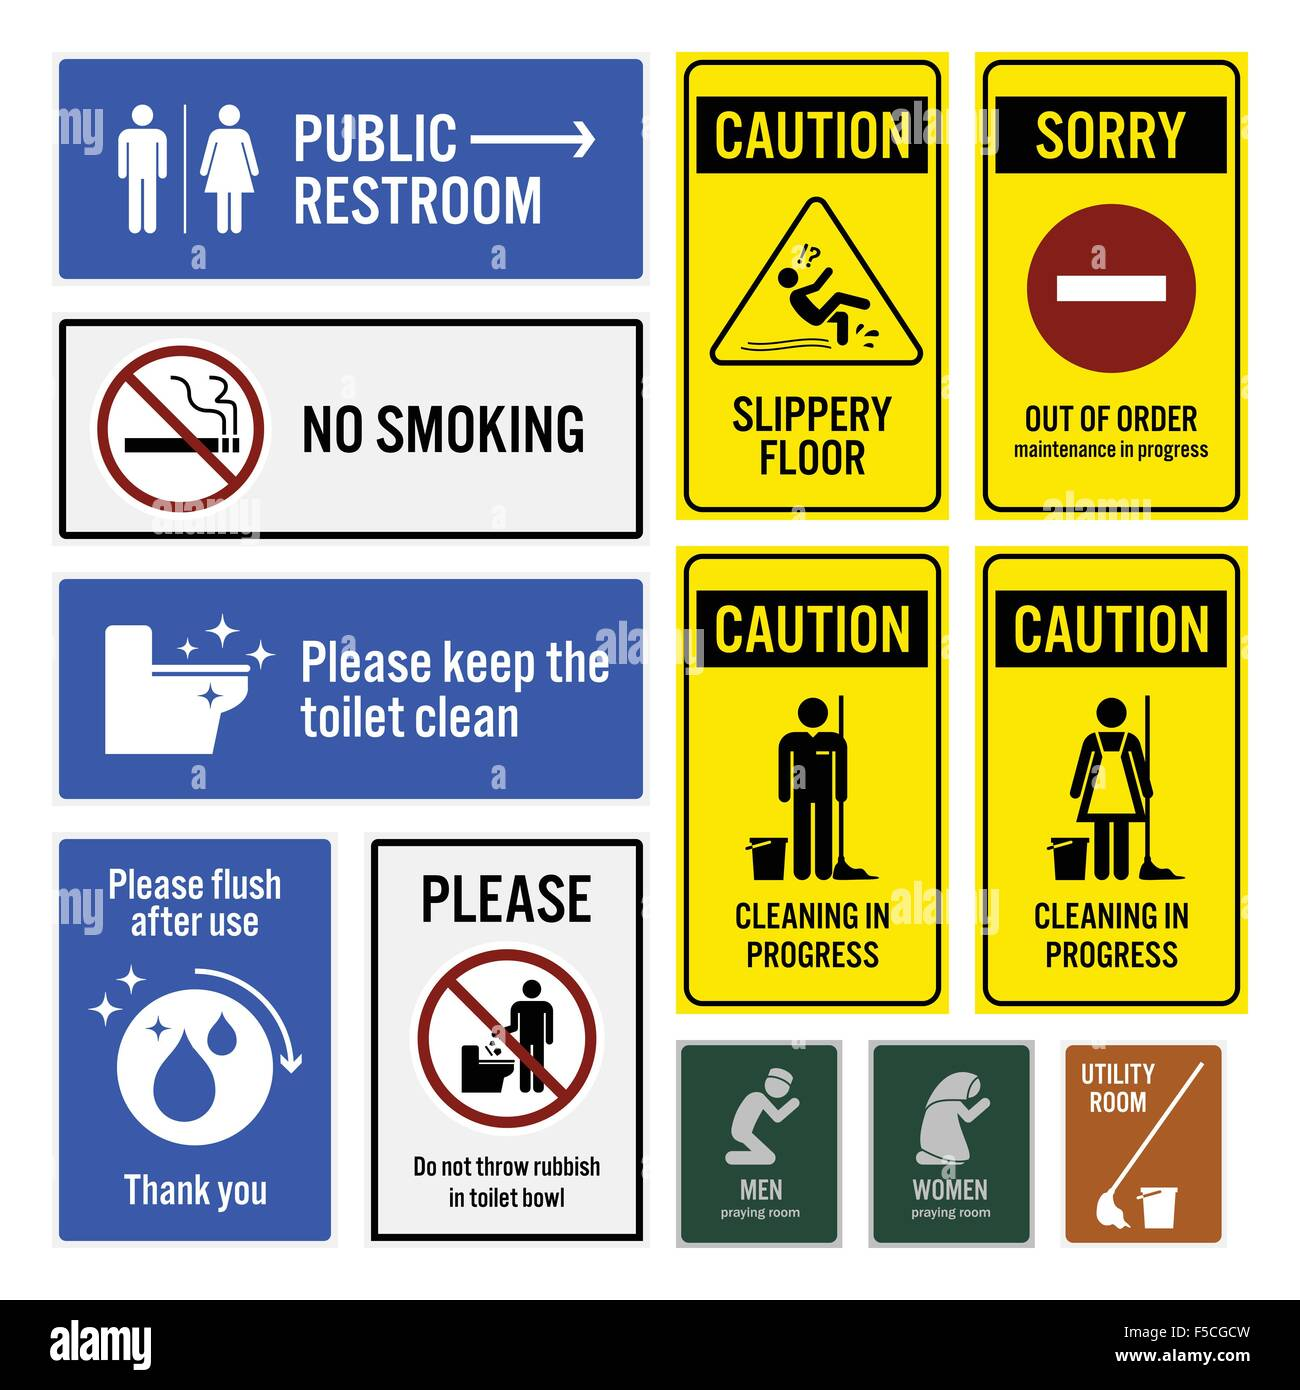 Toilet Notice and Restroom Warning Sign Signboards - Stock Image